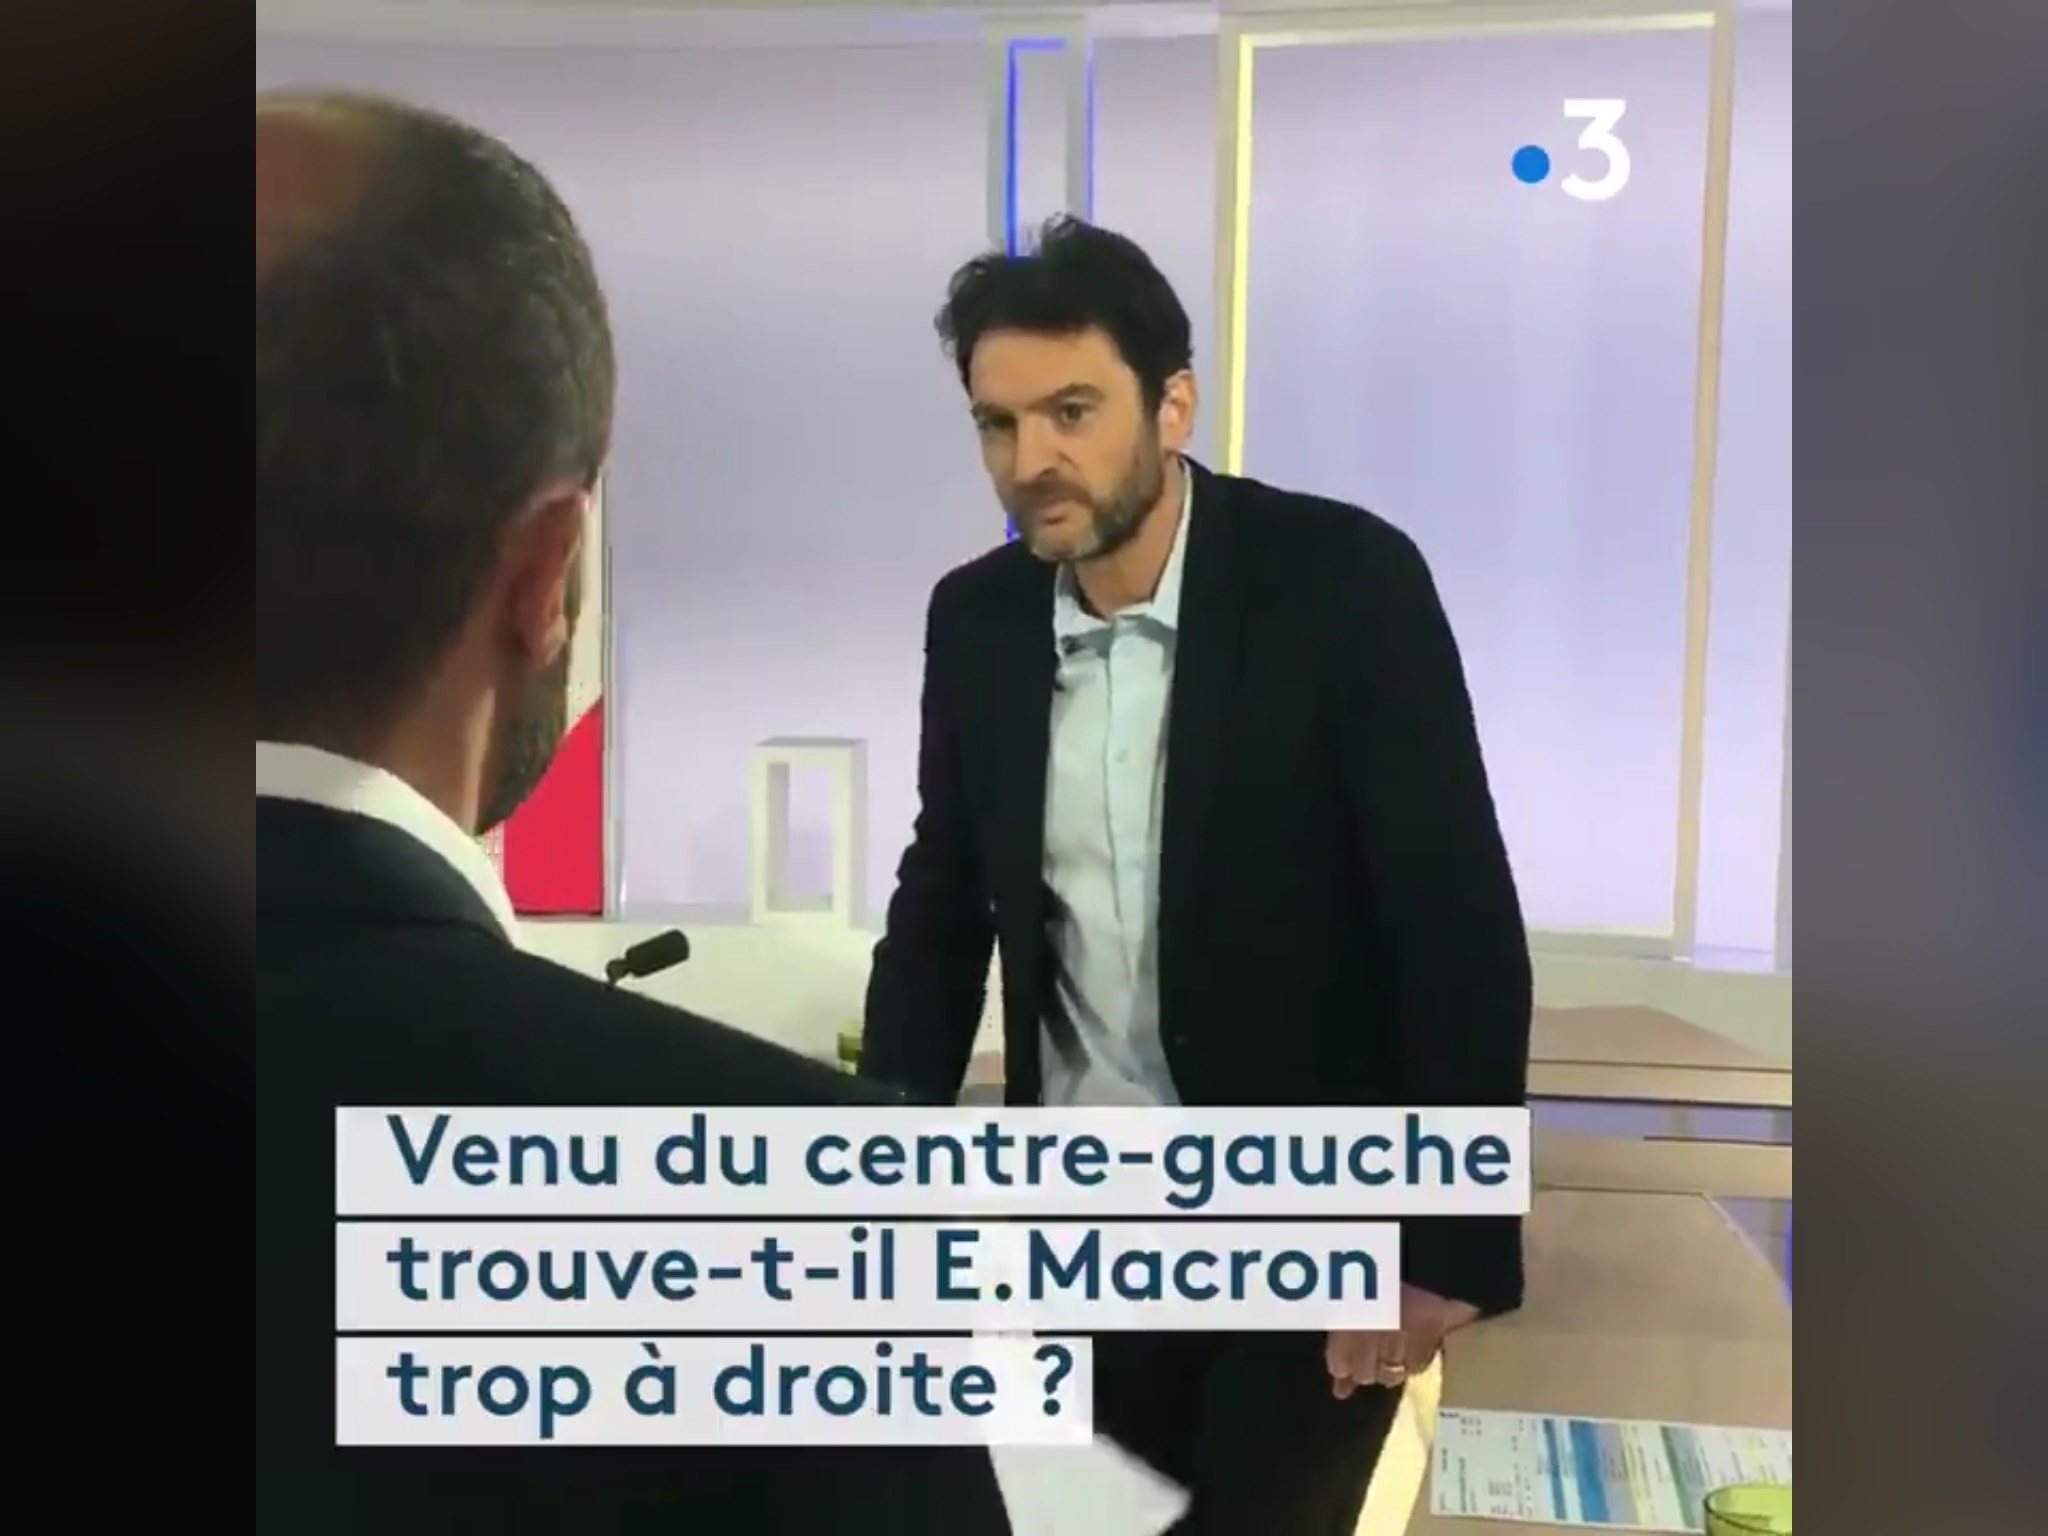 France 3 Bretagne – La réforme version Macron